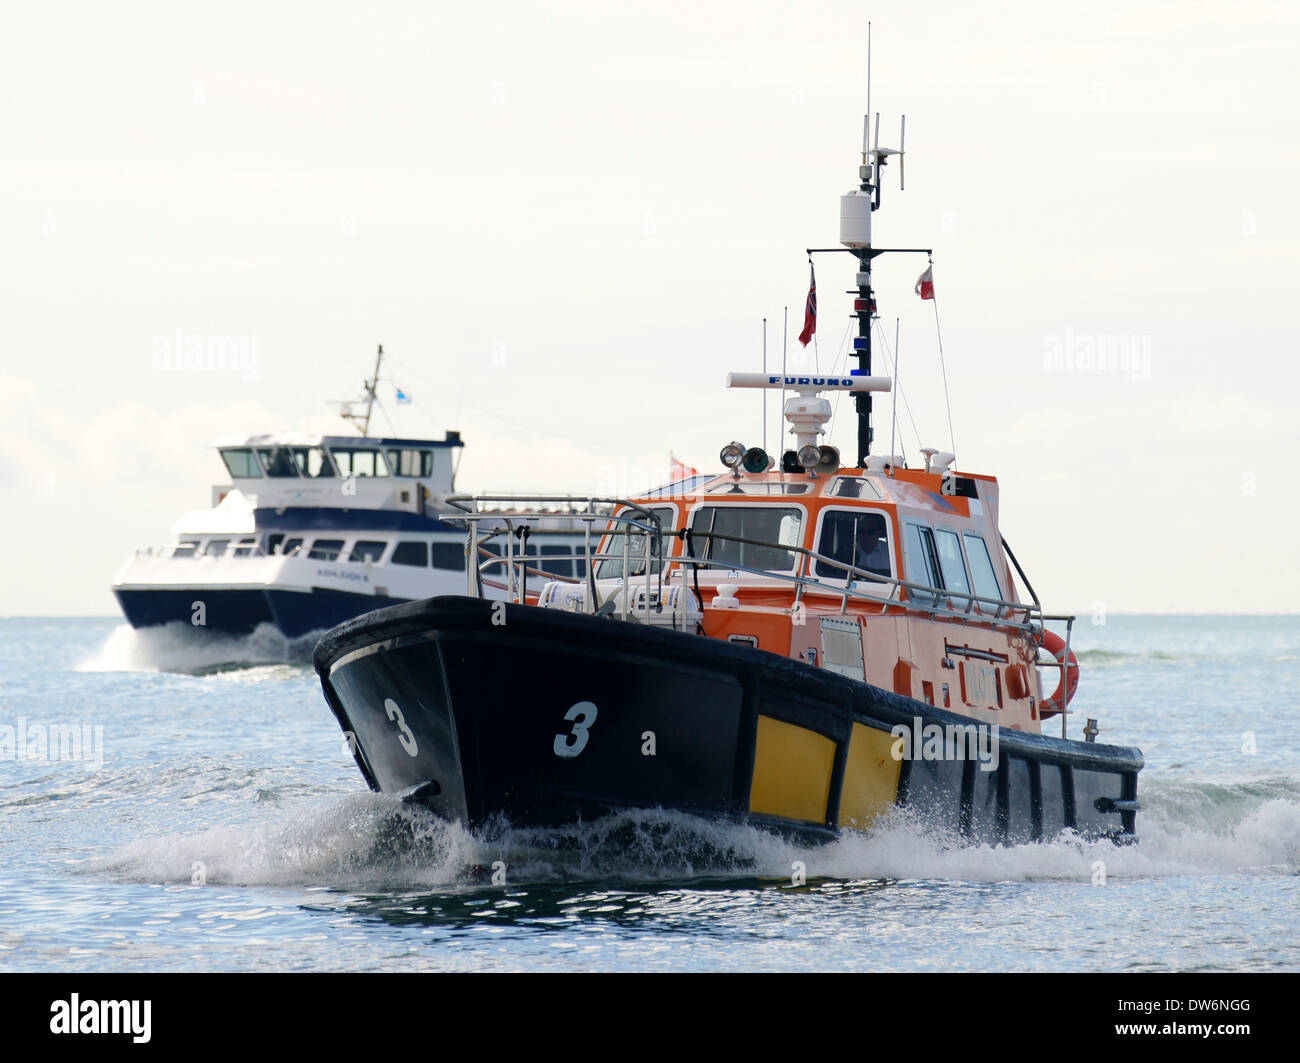 Southampton Pilot Boat No.3 with Isle of Wight ferry - Stock Image